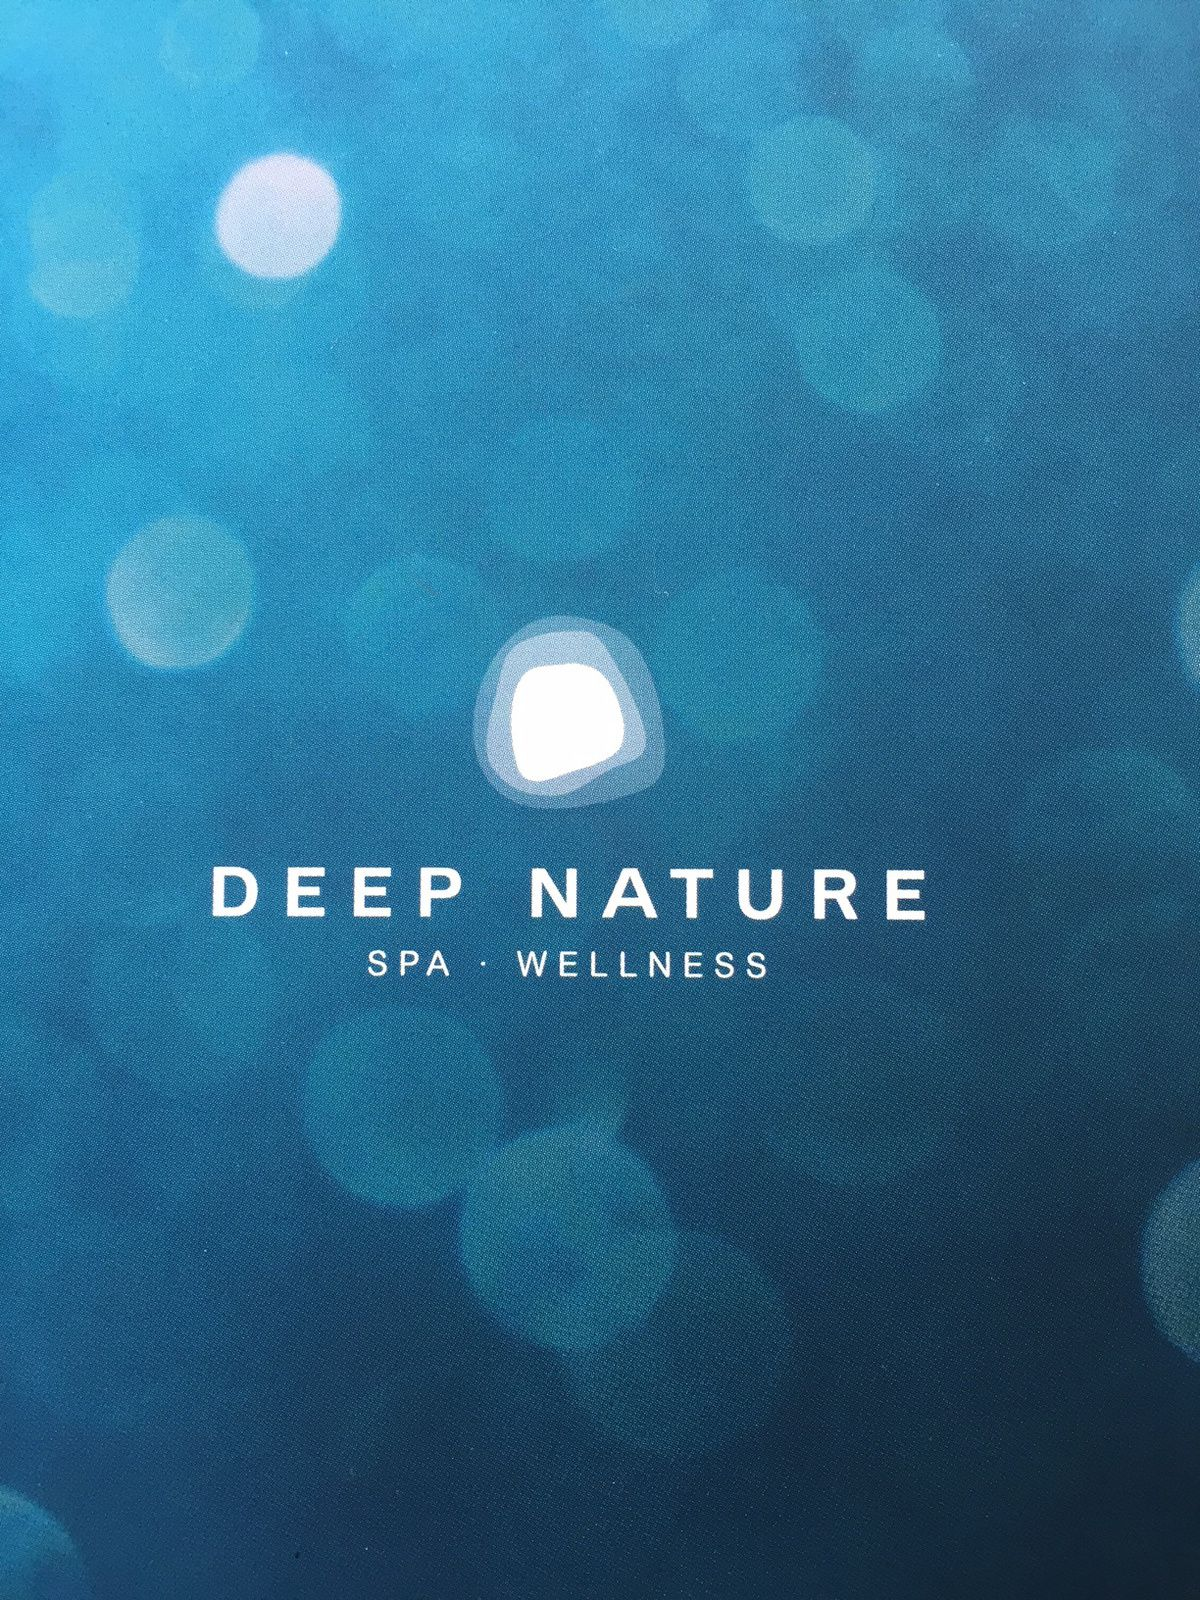 Deep Nature - Spa by Clarins (Marseille)